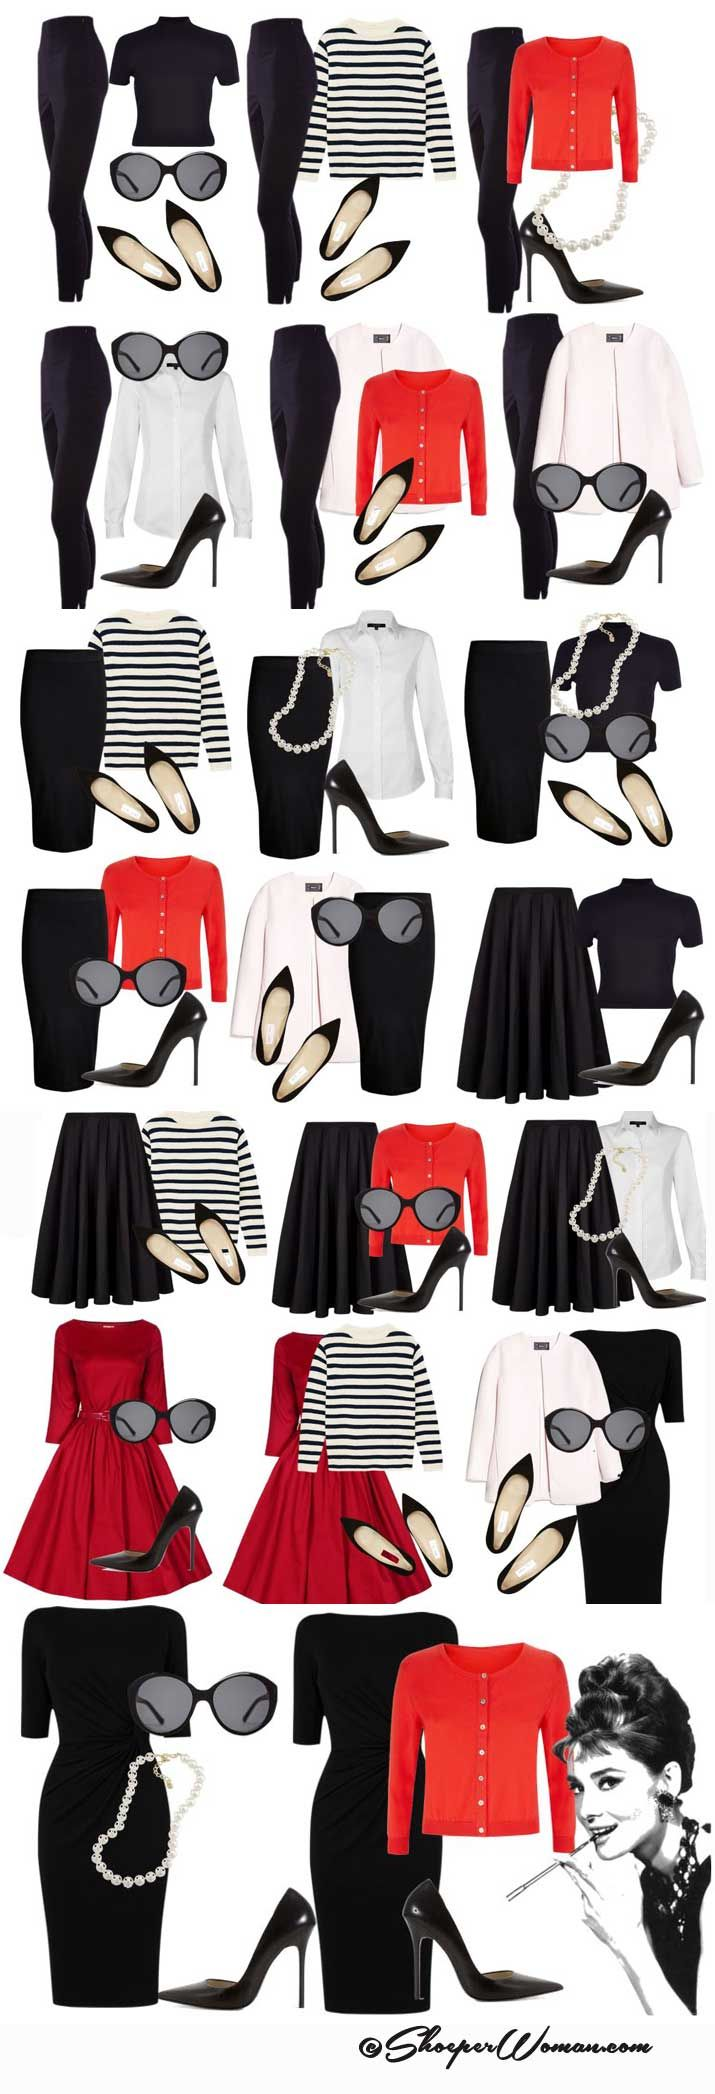 Trendy Fashion And Accessories In Black Red And White